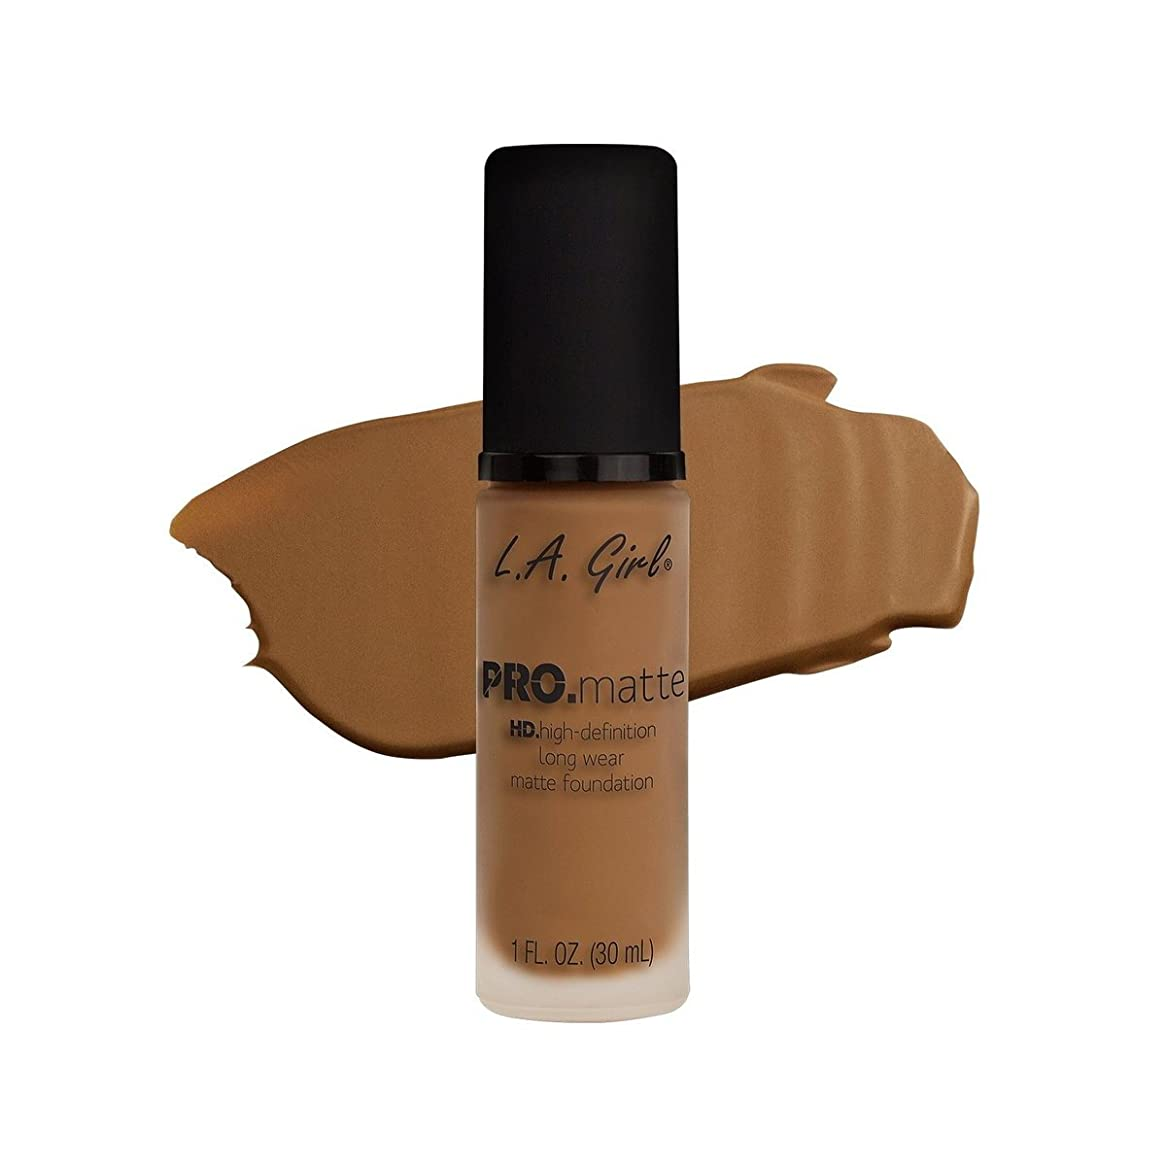 真空充実レタス(6 Pack) L.A. GIRL Pro Matte Foundation - Cafe (並行輸入品)